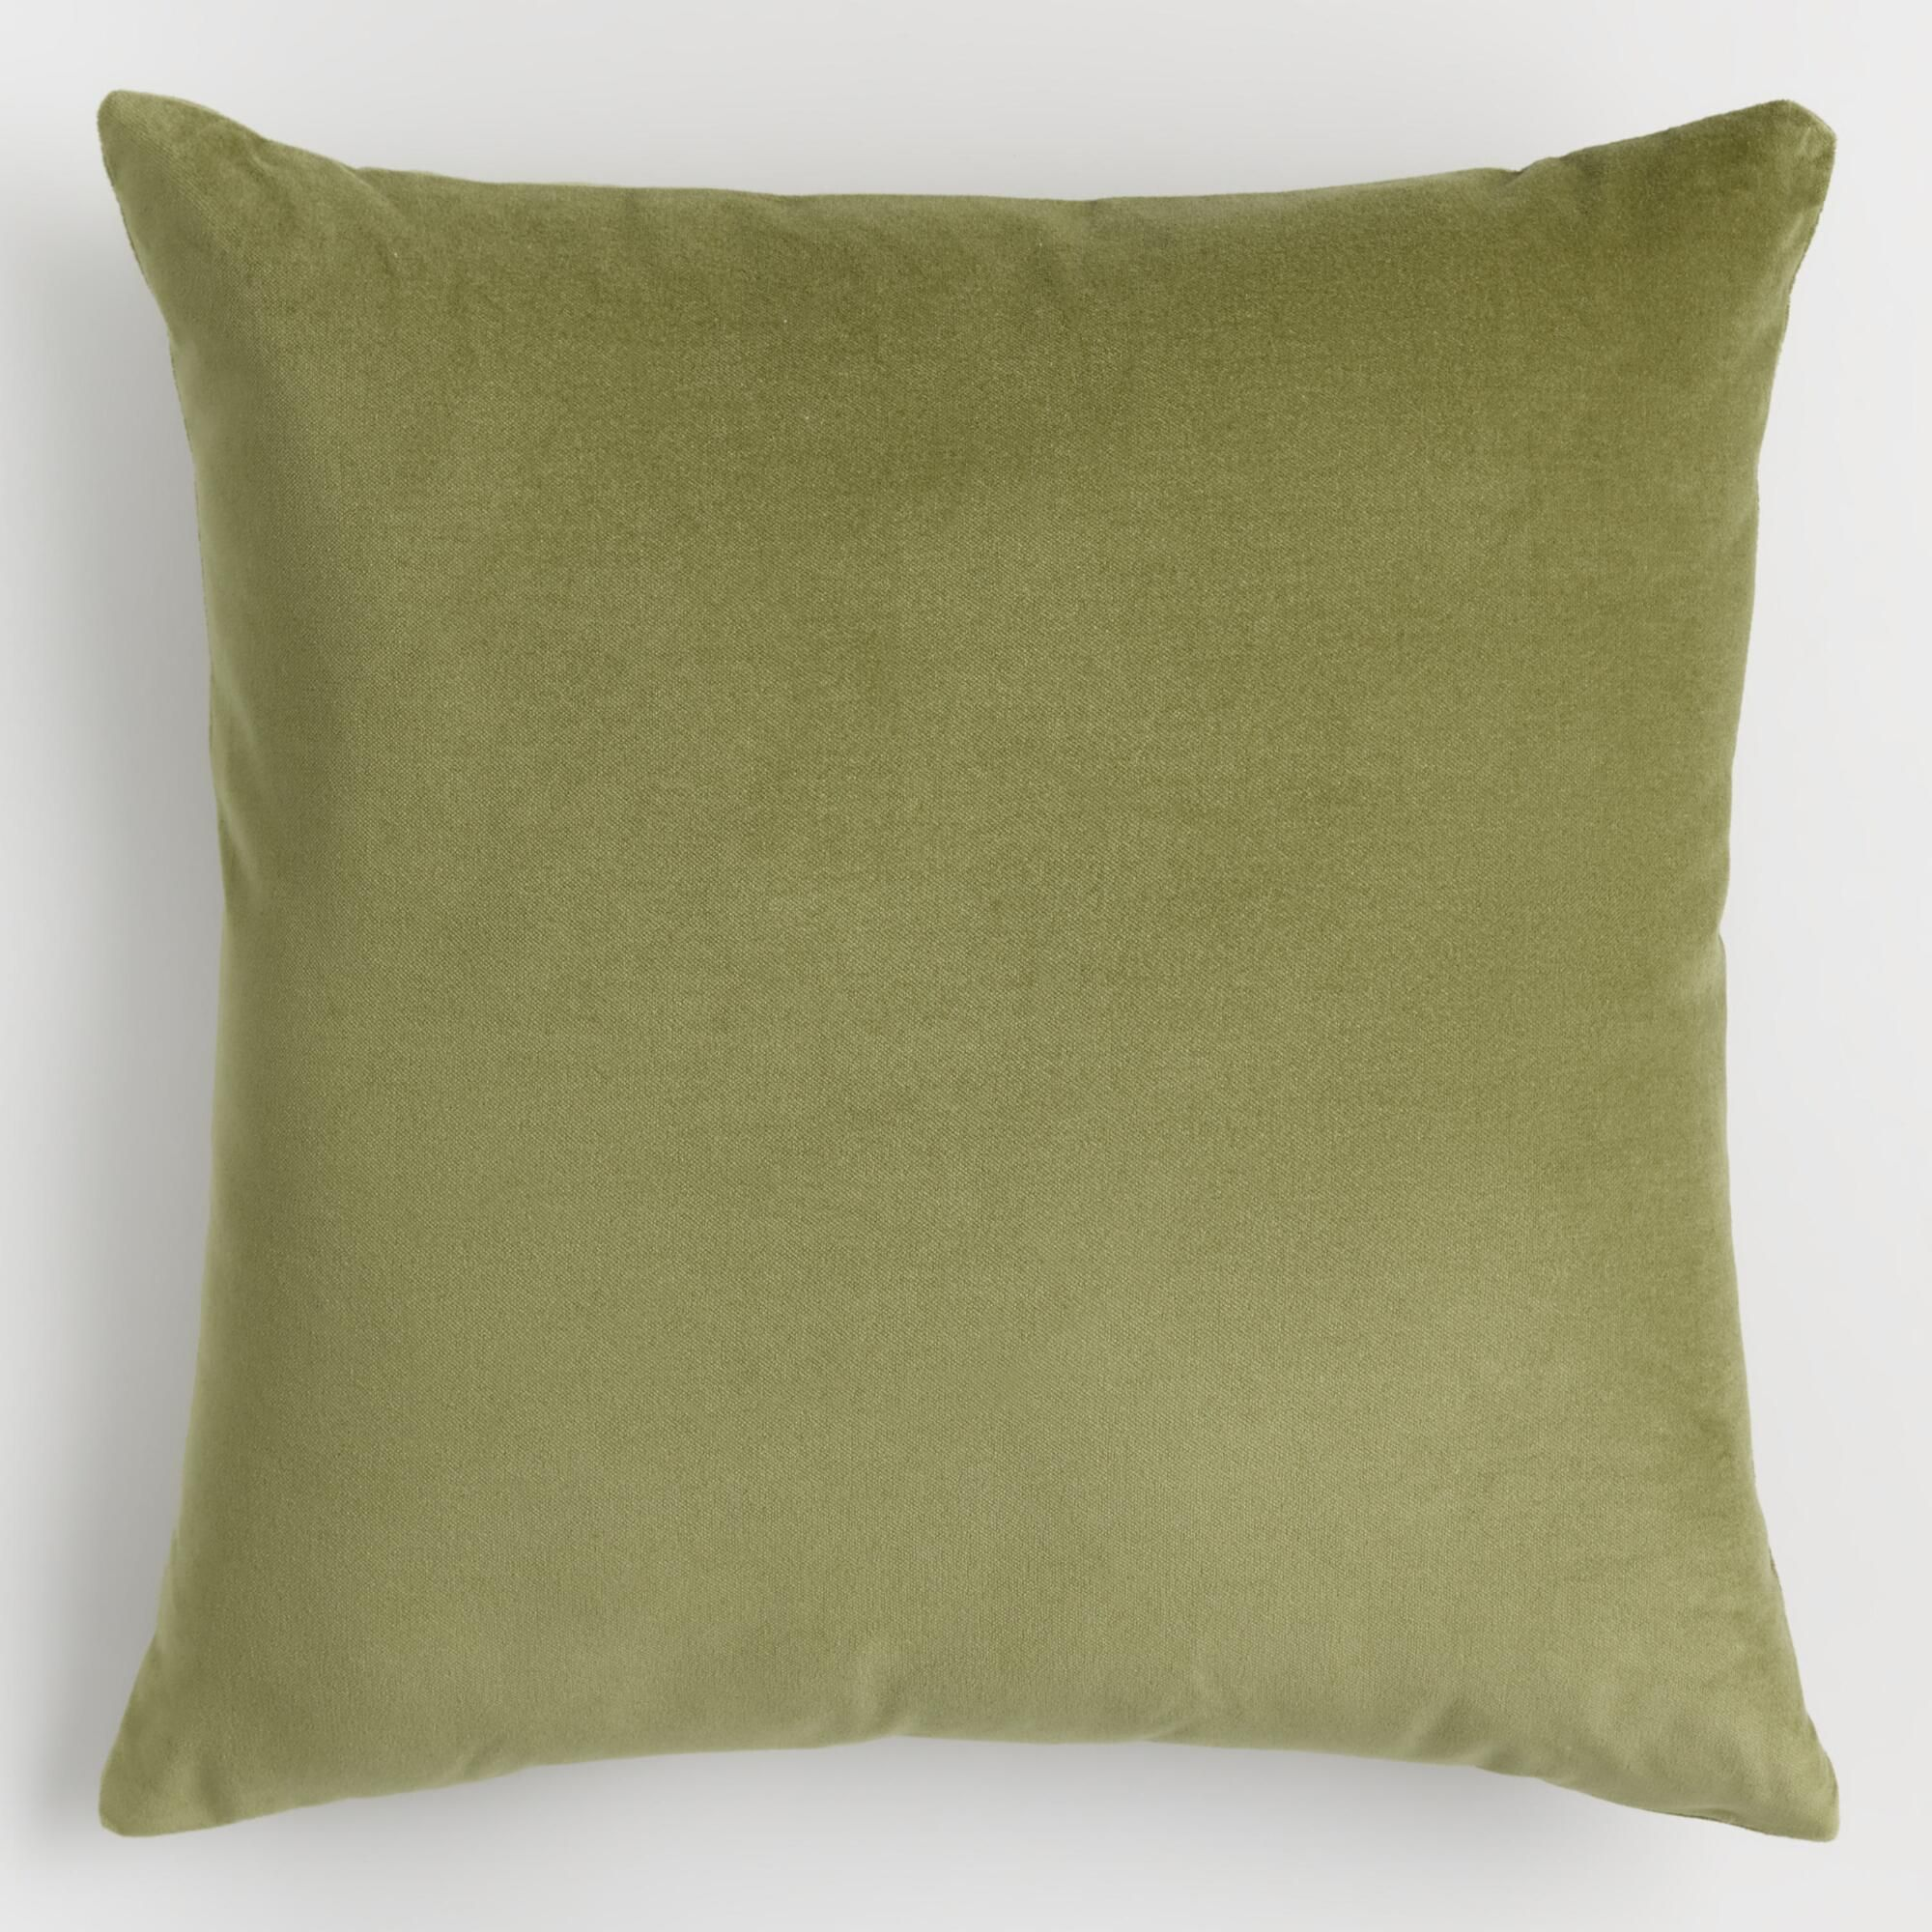 Light Green Velvet Throw Pillow By World Market Pillows